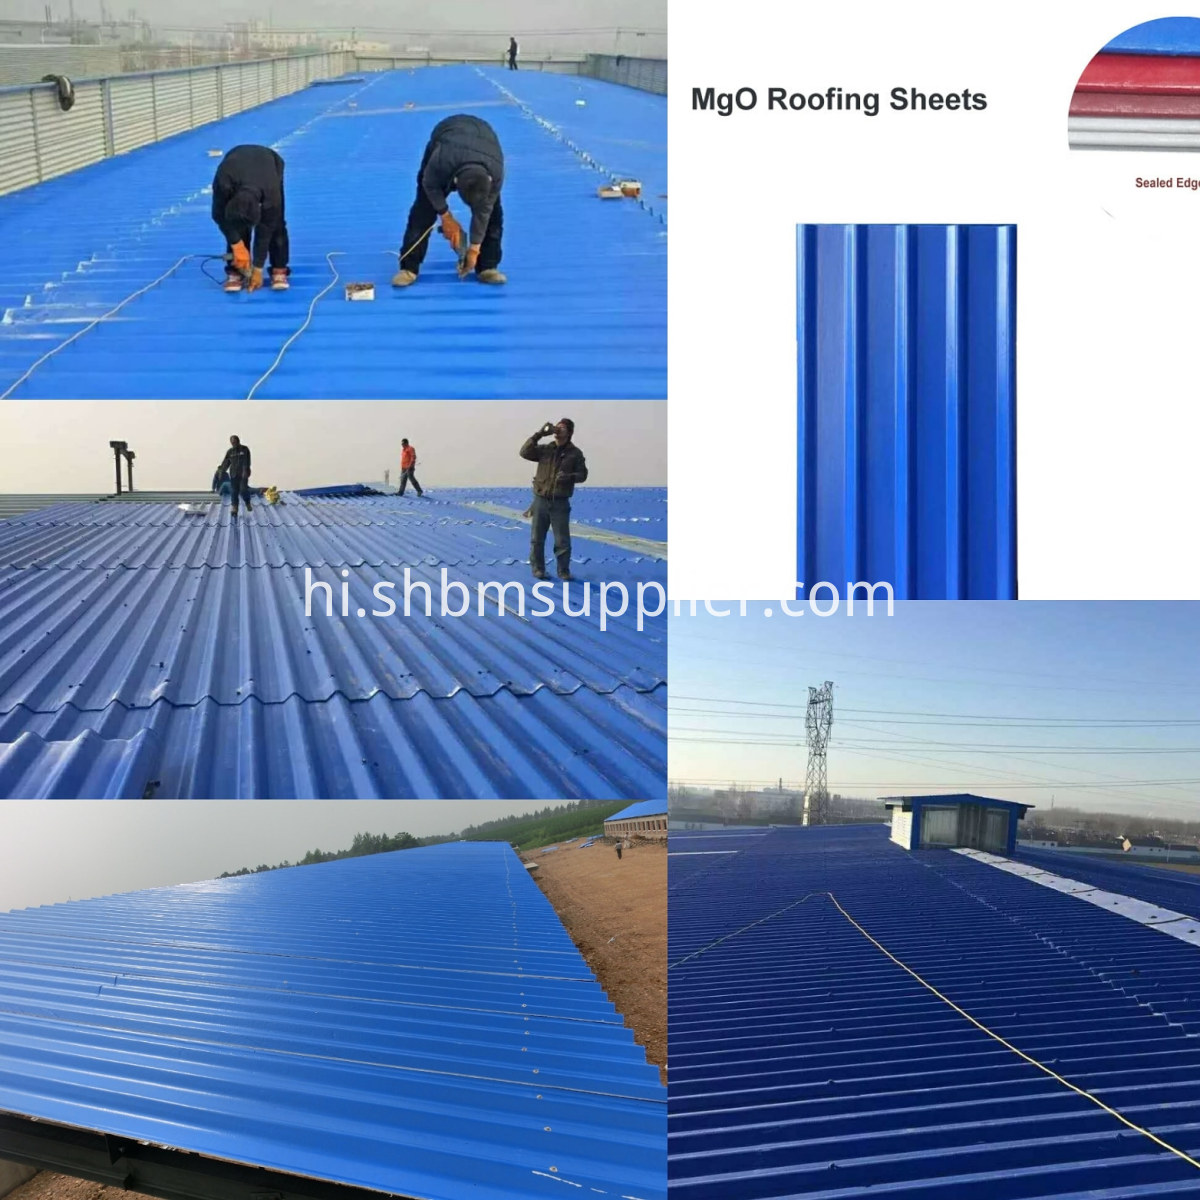 Heat-proof Anti-Corrosion MgO Roof Sheet With Sealed Edge